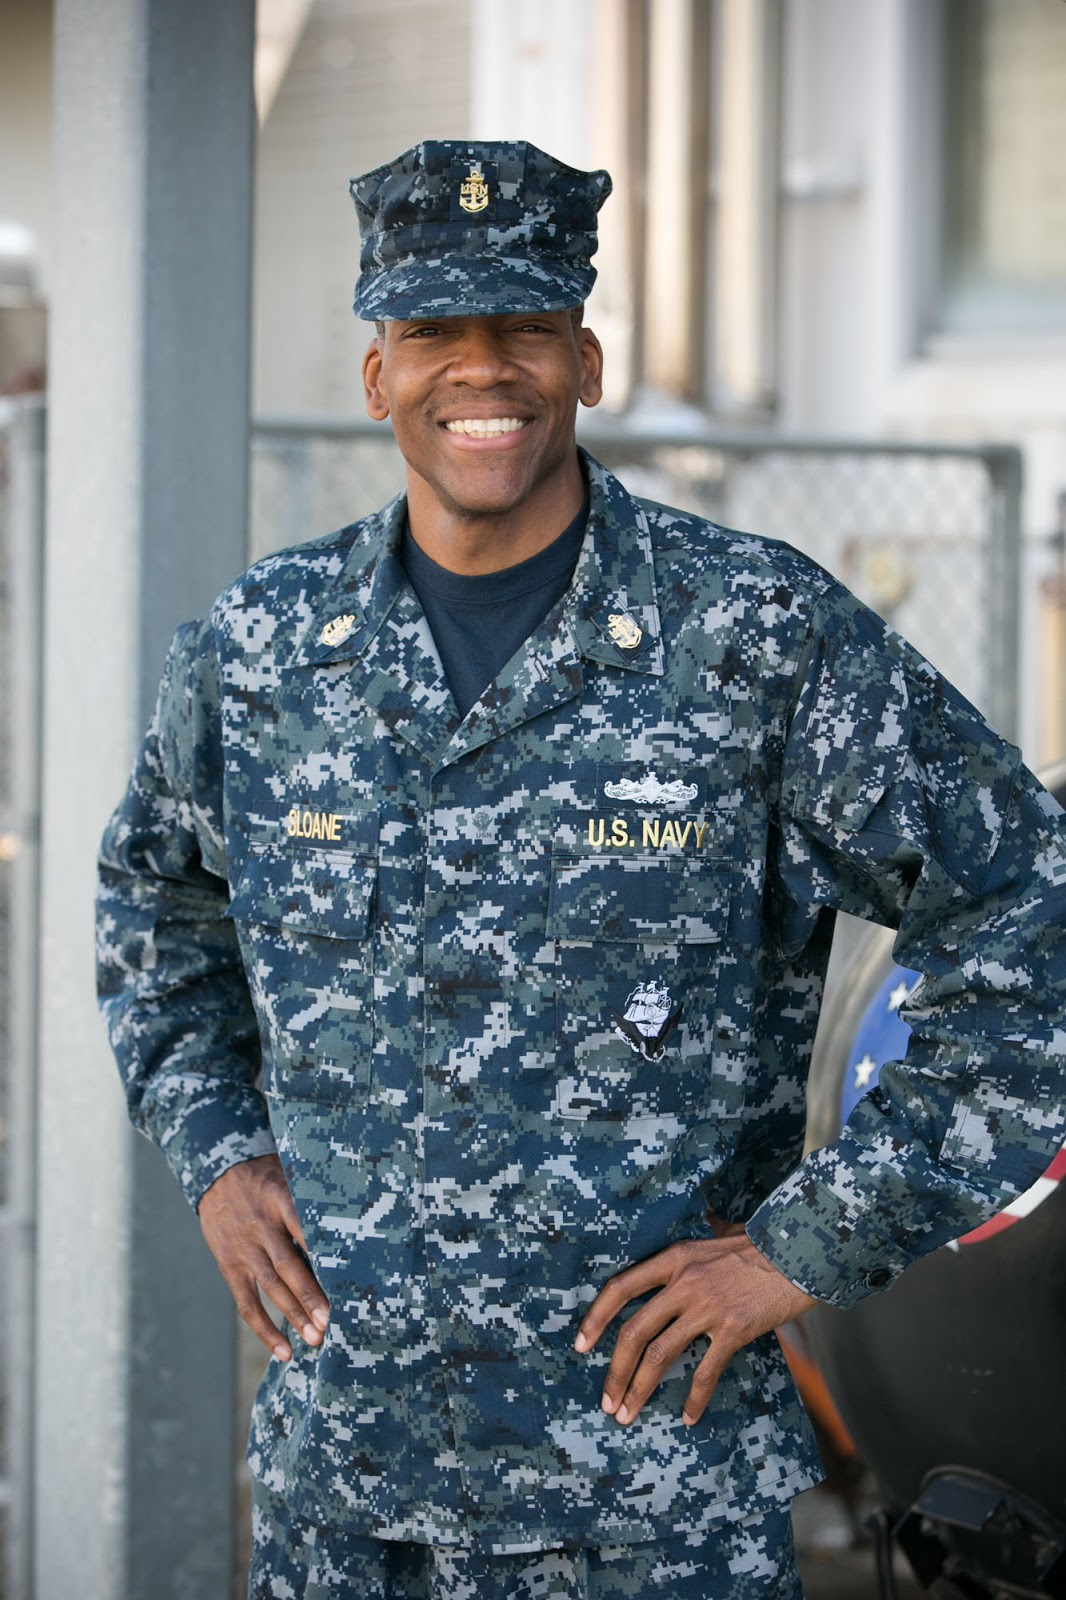 harrisburg pa native serving aboard a navy forward deployed mine countermeasures ship in japan american connections media outreach